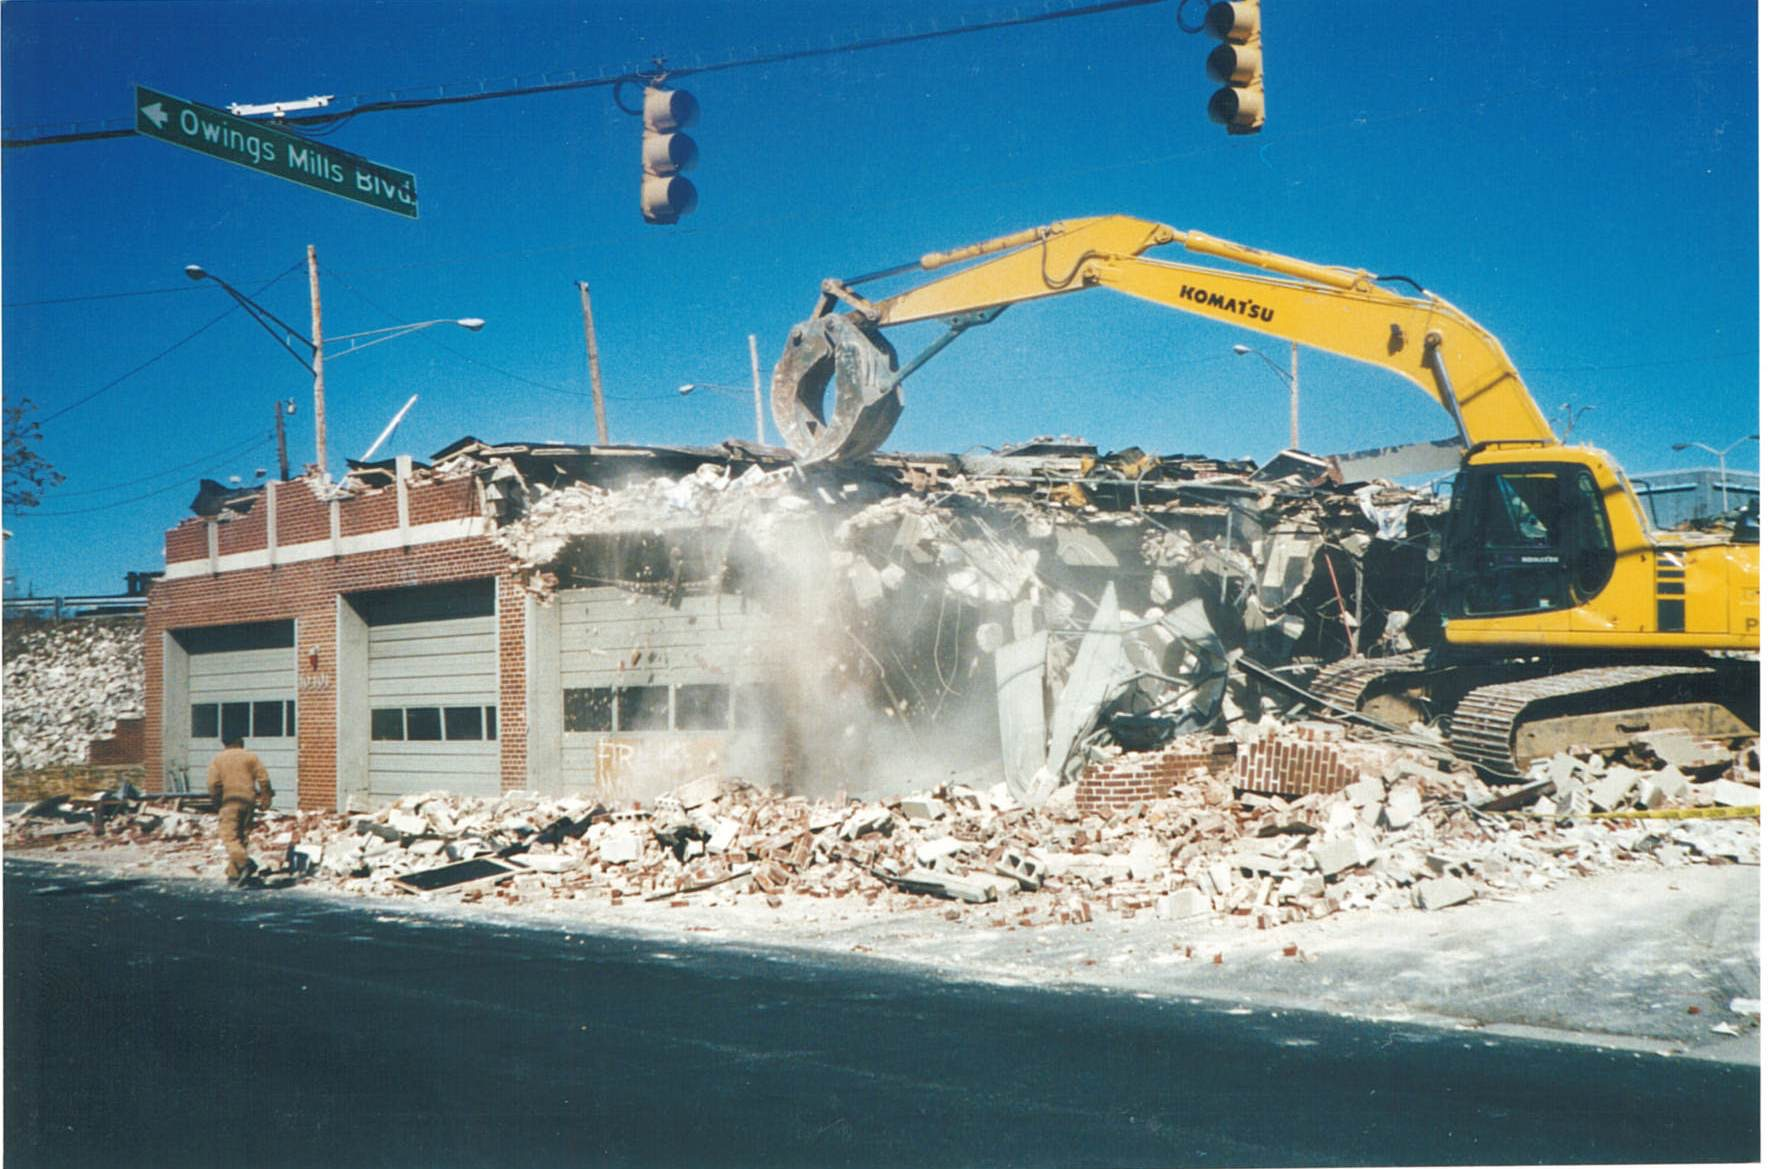 Demolition of the original fire station, located at 10401 Reisterstown Road.